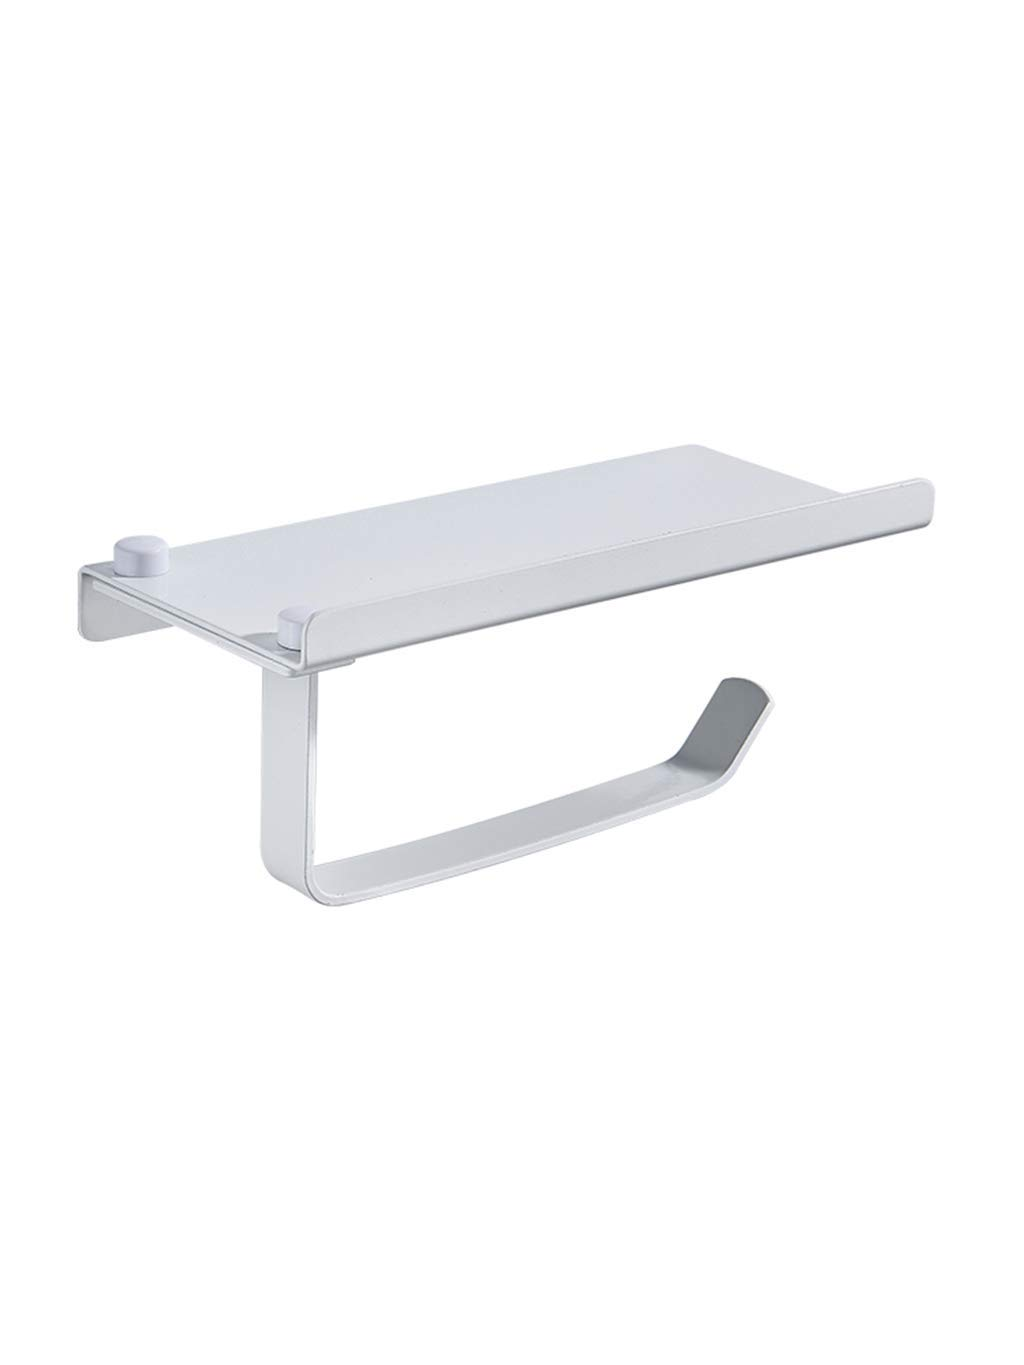 LE fu yan Toilet Paper Holder Punch-free Bathroom Toilet Mobile Phone Holder Roll Paper Toilet Paper Holder Toilet Paper Holder Tissue Box Paper Holder Wall Mount (Color : A)